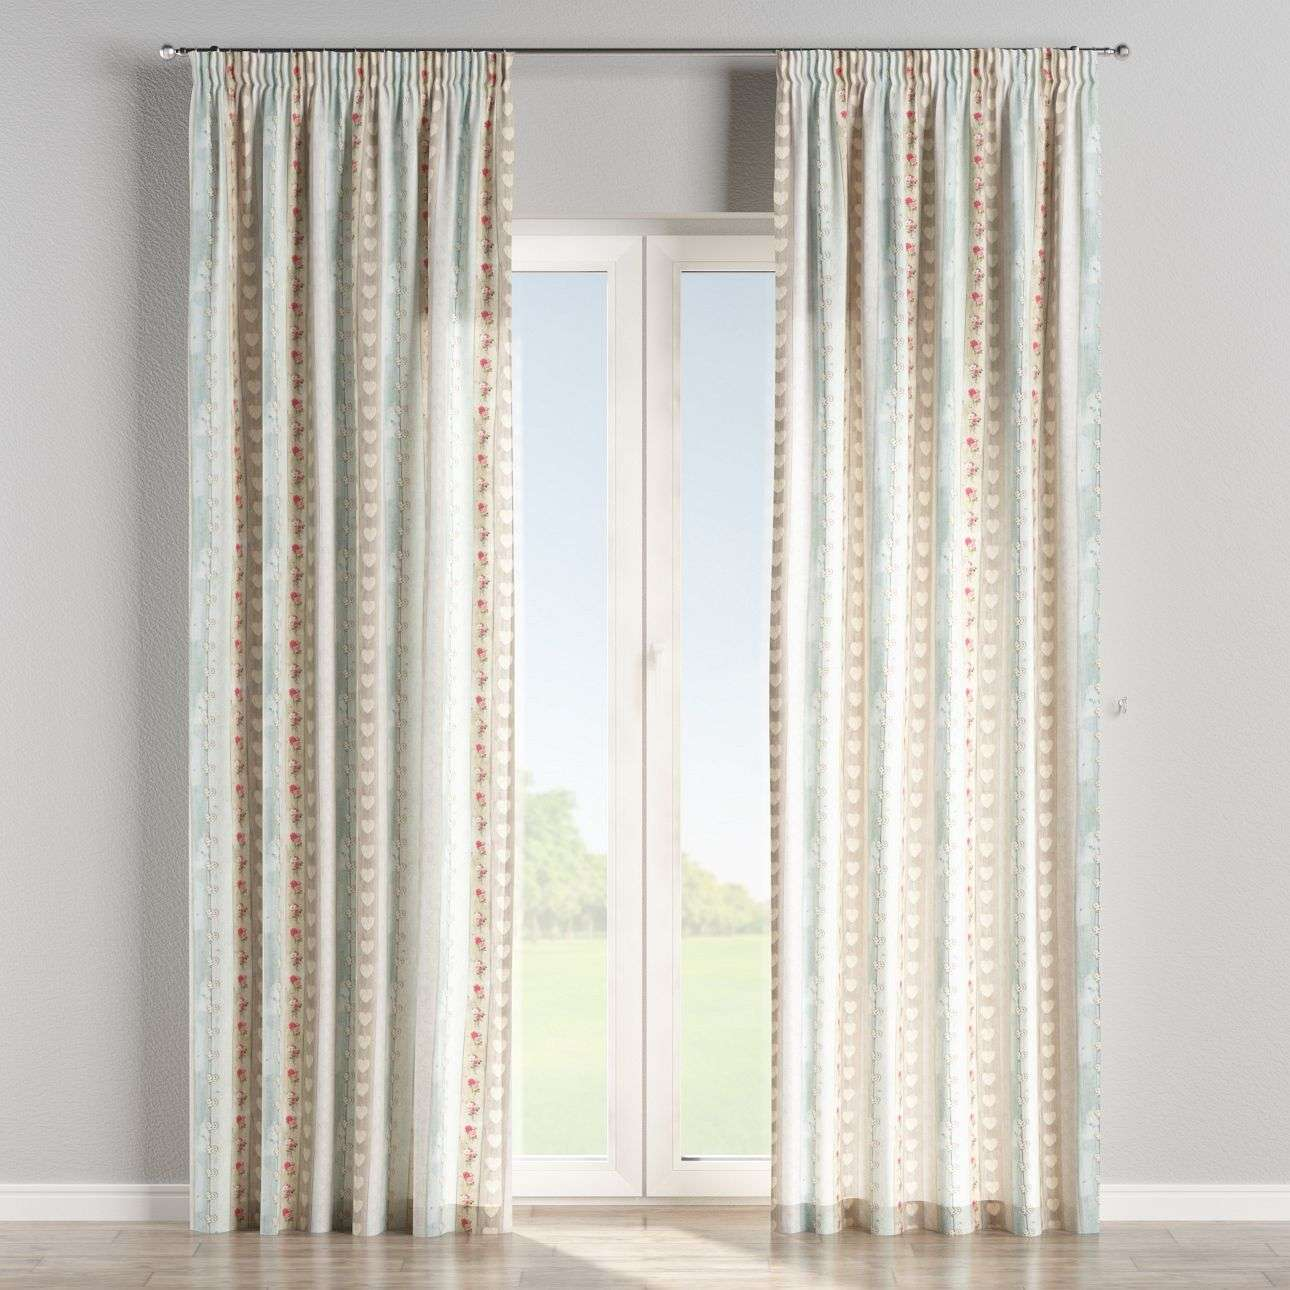 Pencil pleat curtains 130 x 260 cm (51 x 102 inch) in collection Ashley, fabric: 140-20